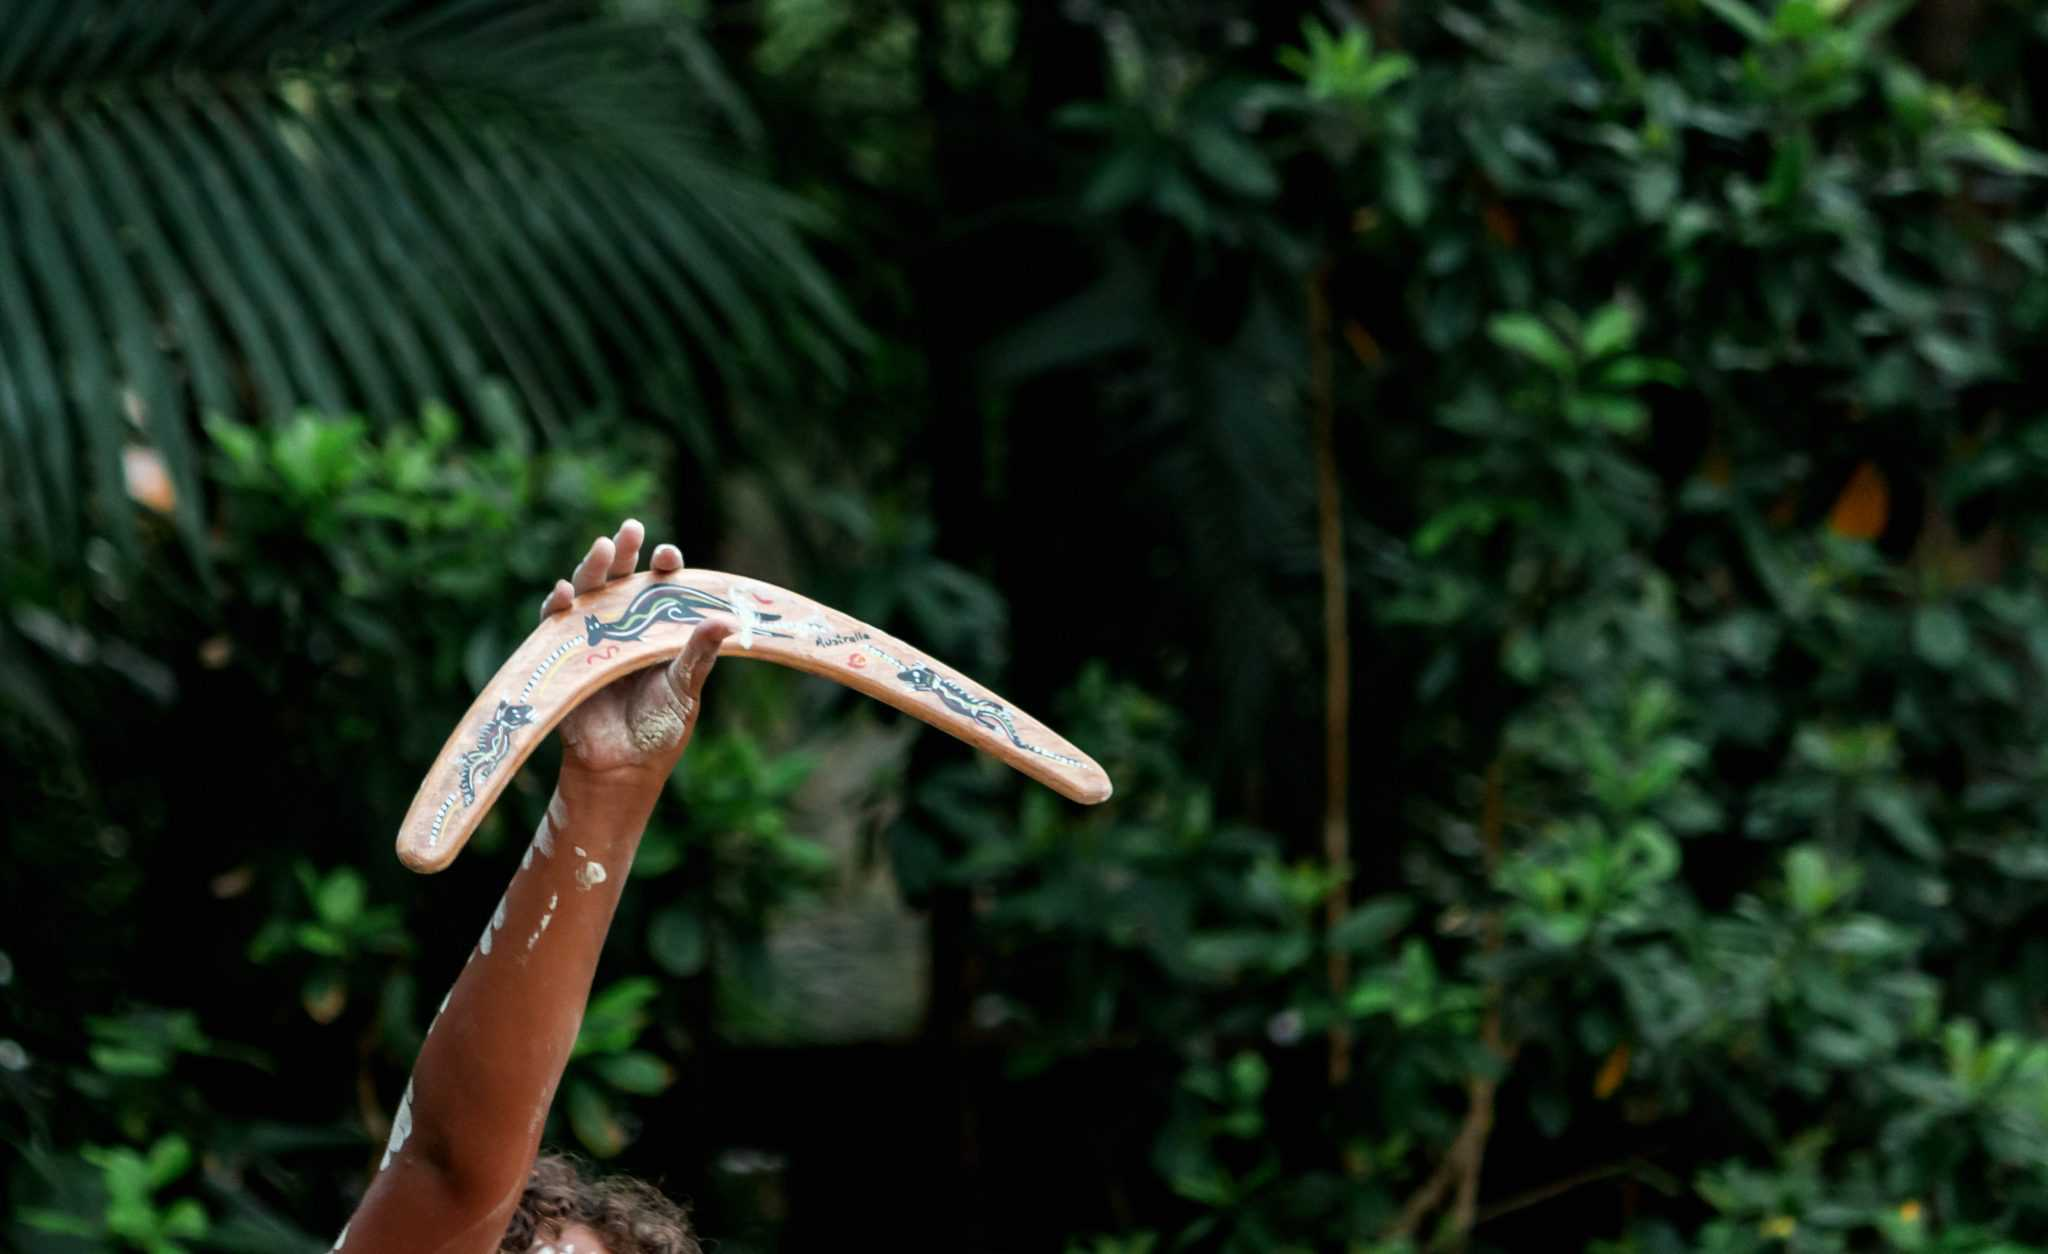 Australian Aborigine culture traditional dance with body paint and hand holding boomerang